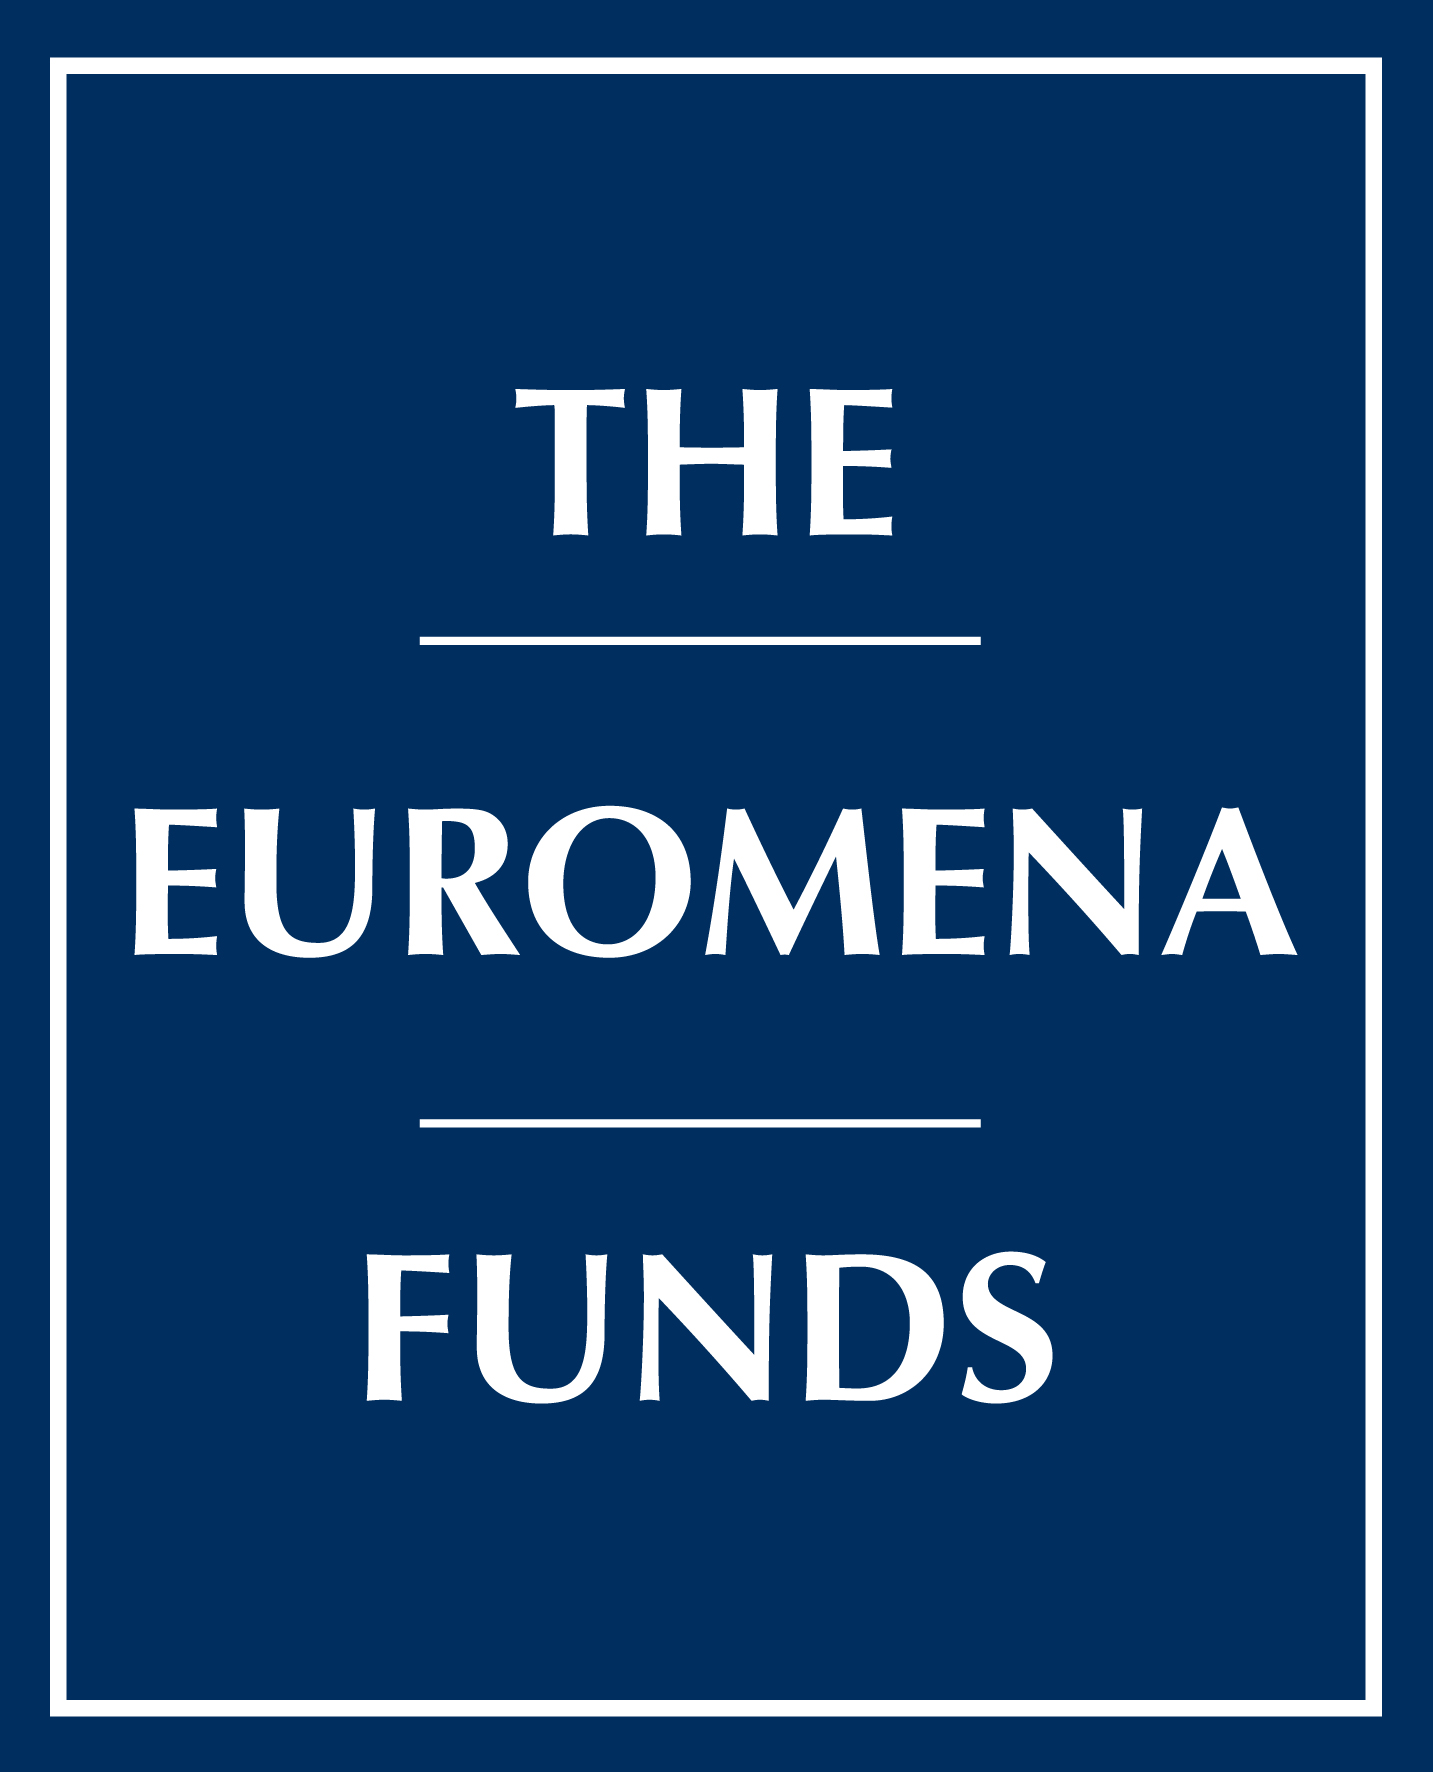 Our Investments – EUROMENA